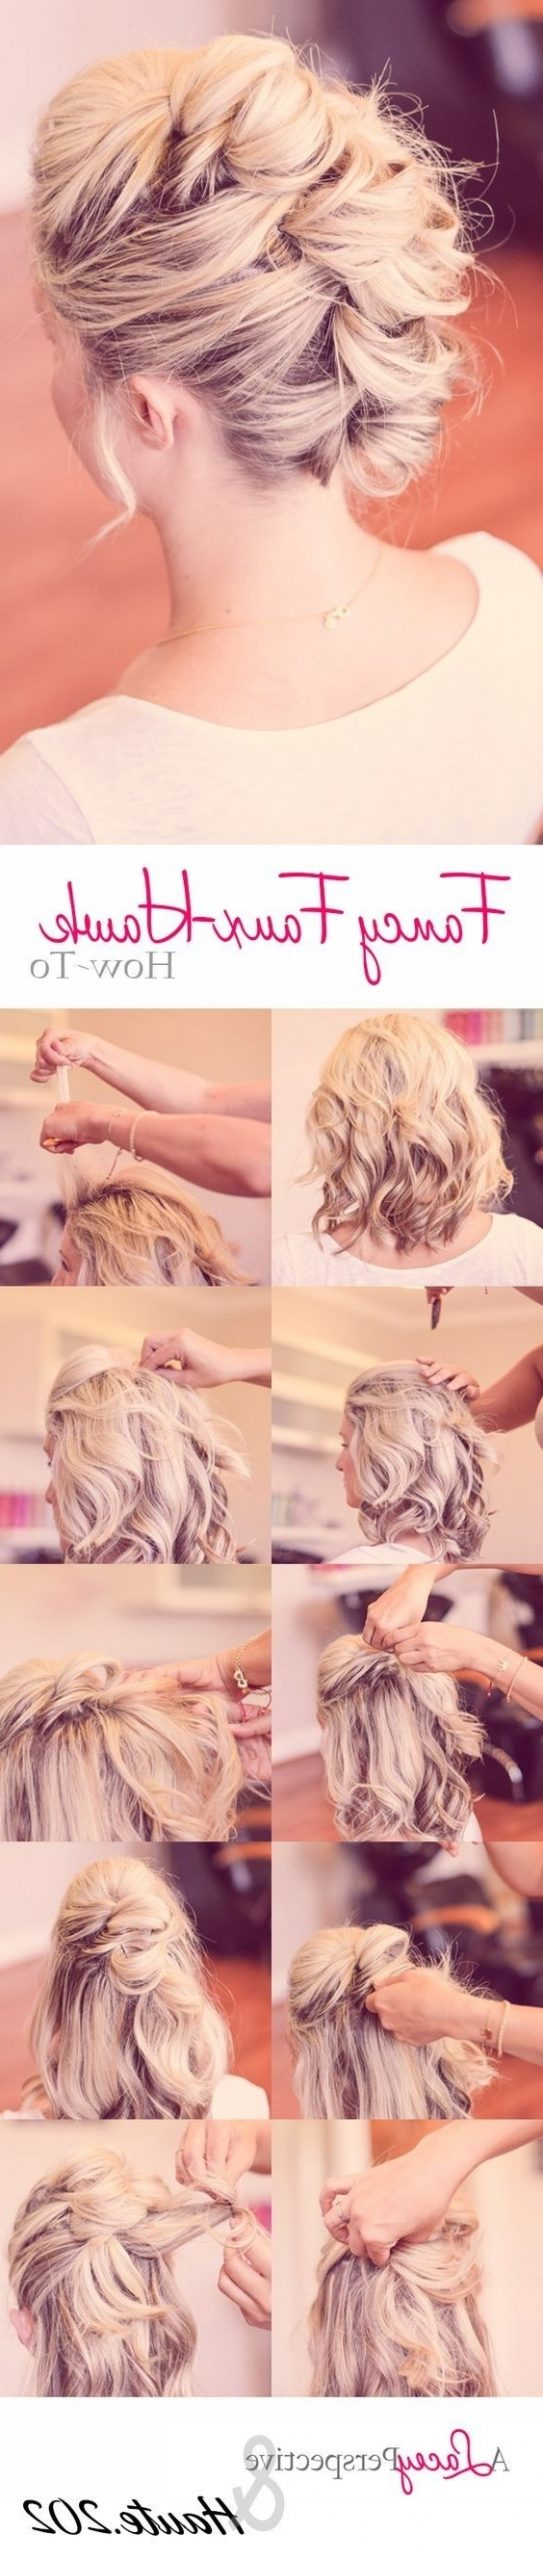 18 Elegant Hairstyles For Prom 2021 40+ Awesome Prom Hairstyles For Medium Hair 2016